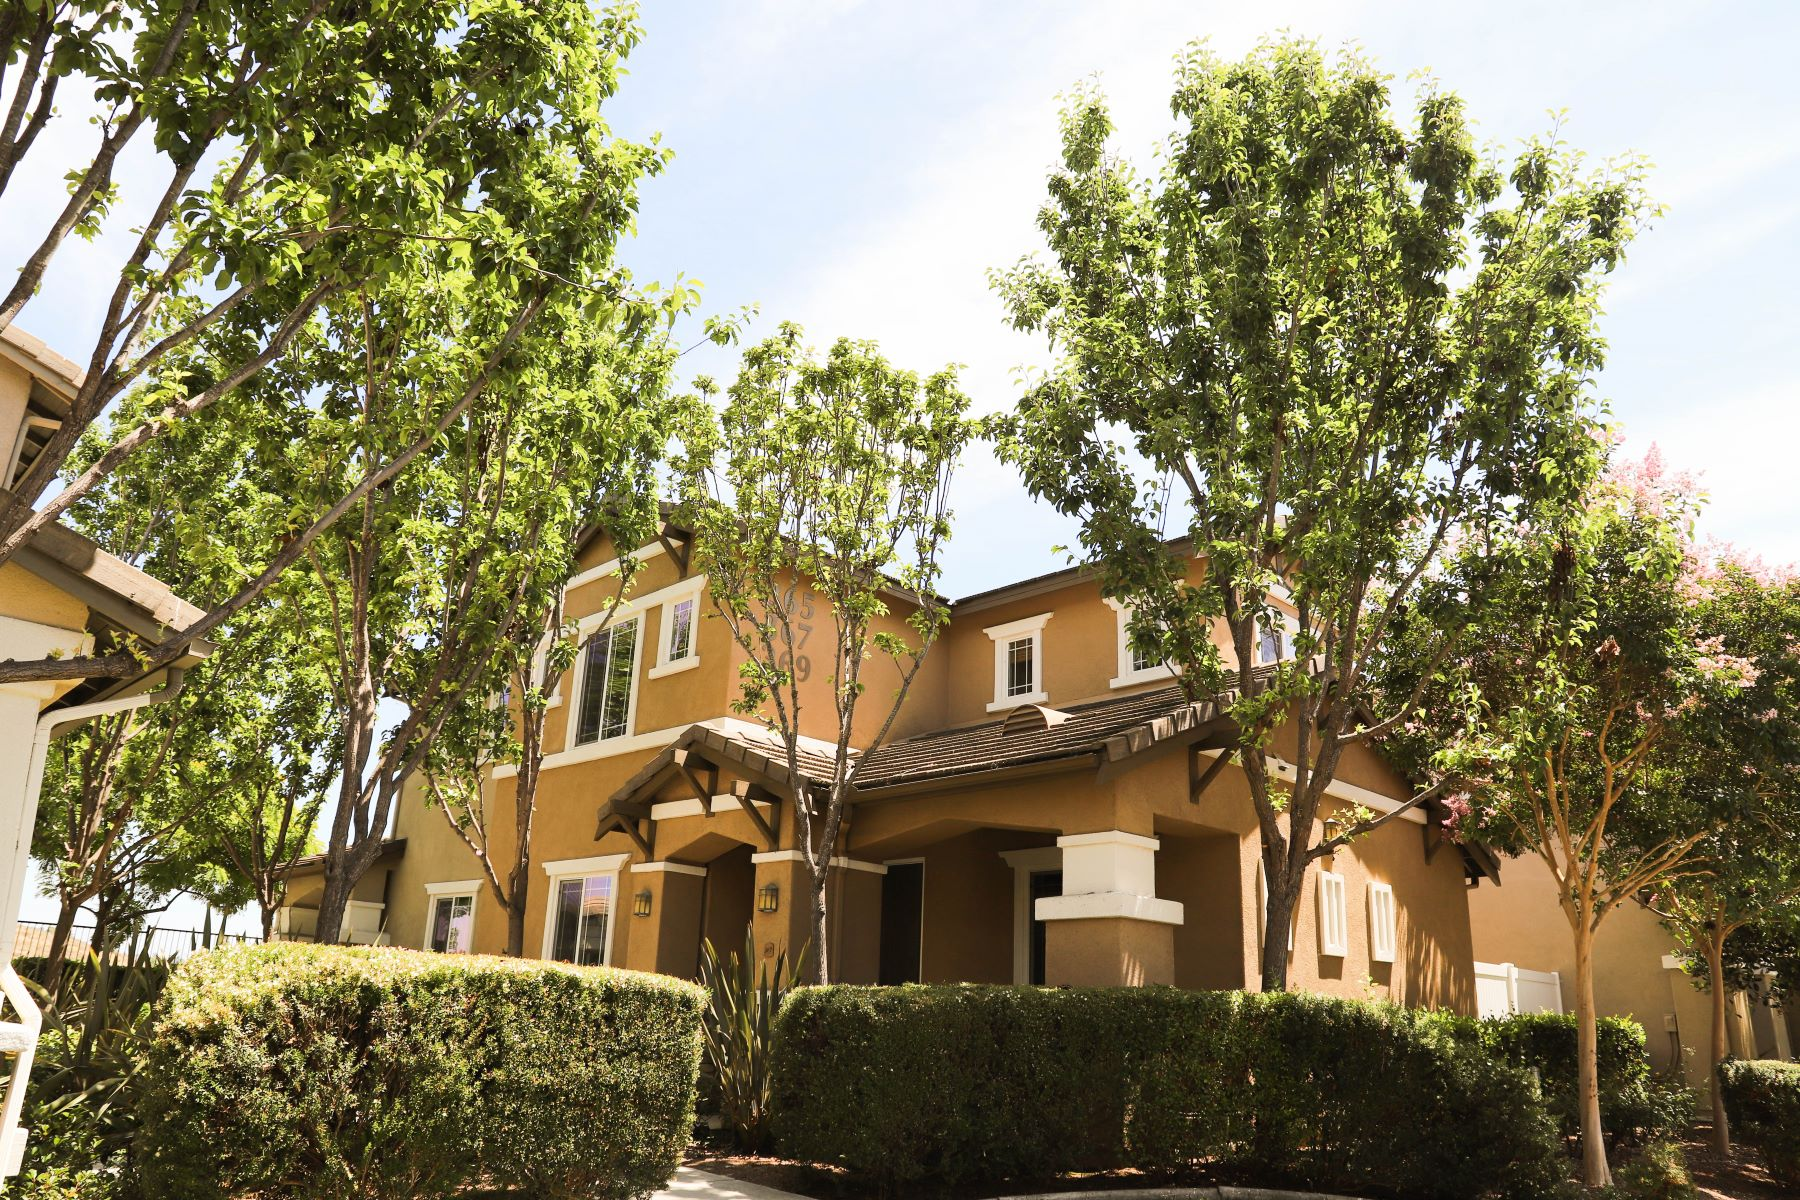 townhouses for Sale at 367 Borden Rd San Marcos, California 92069 United States